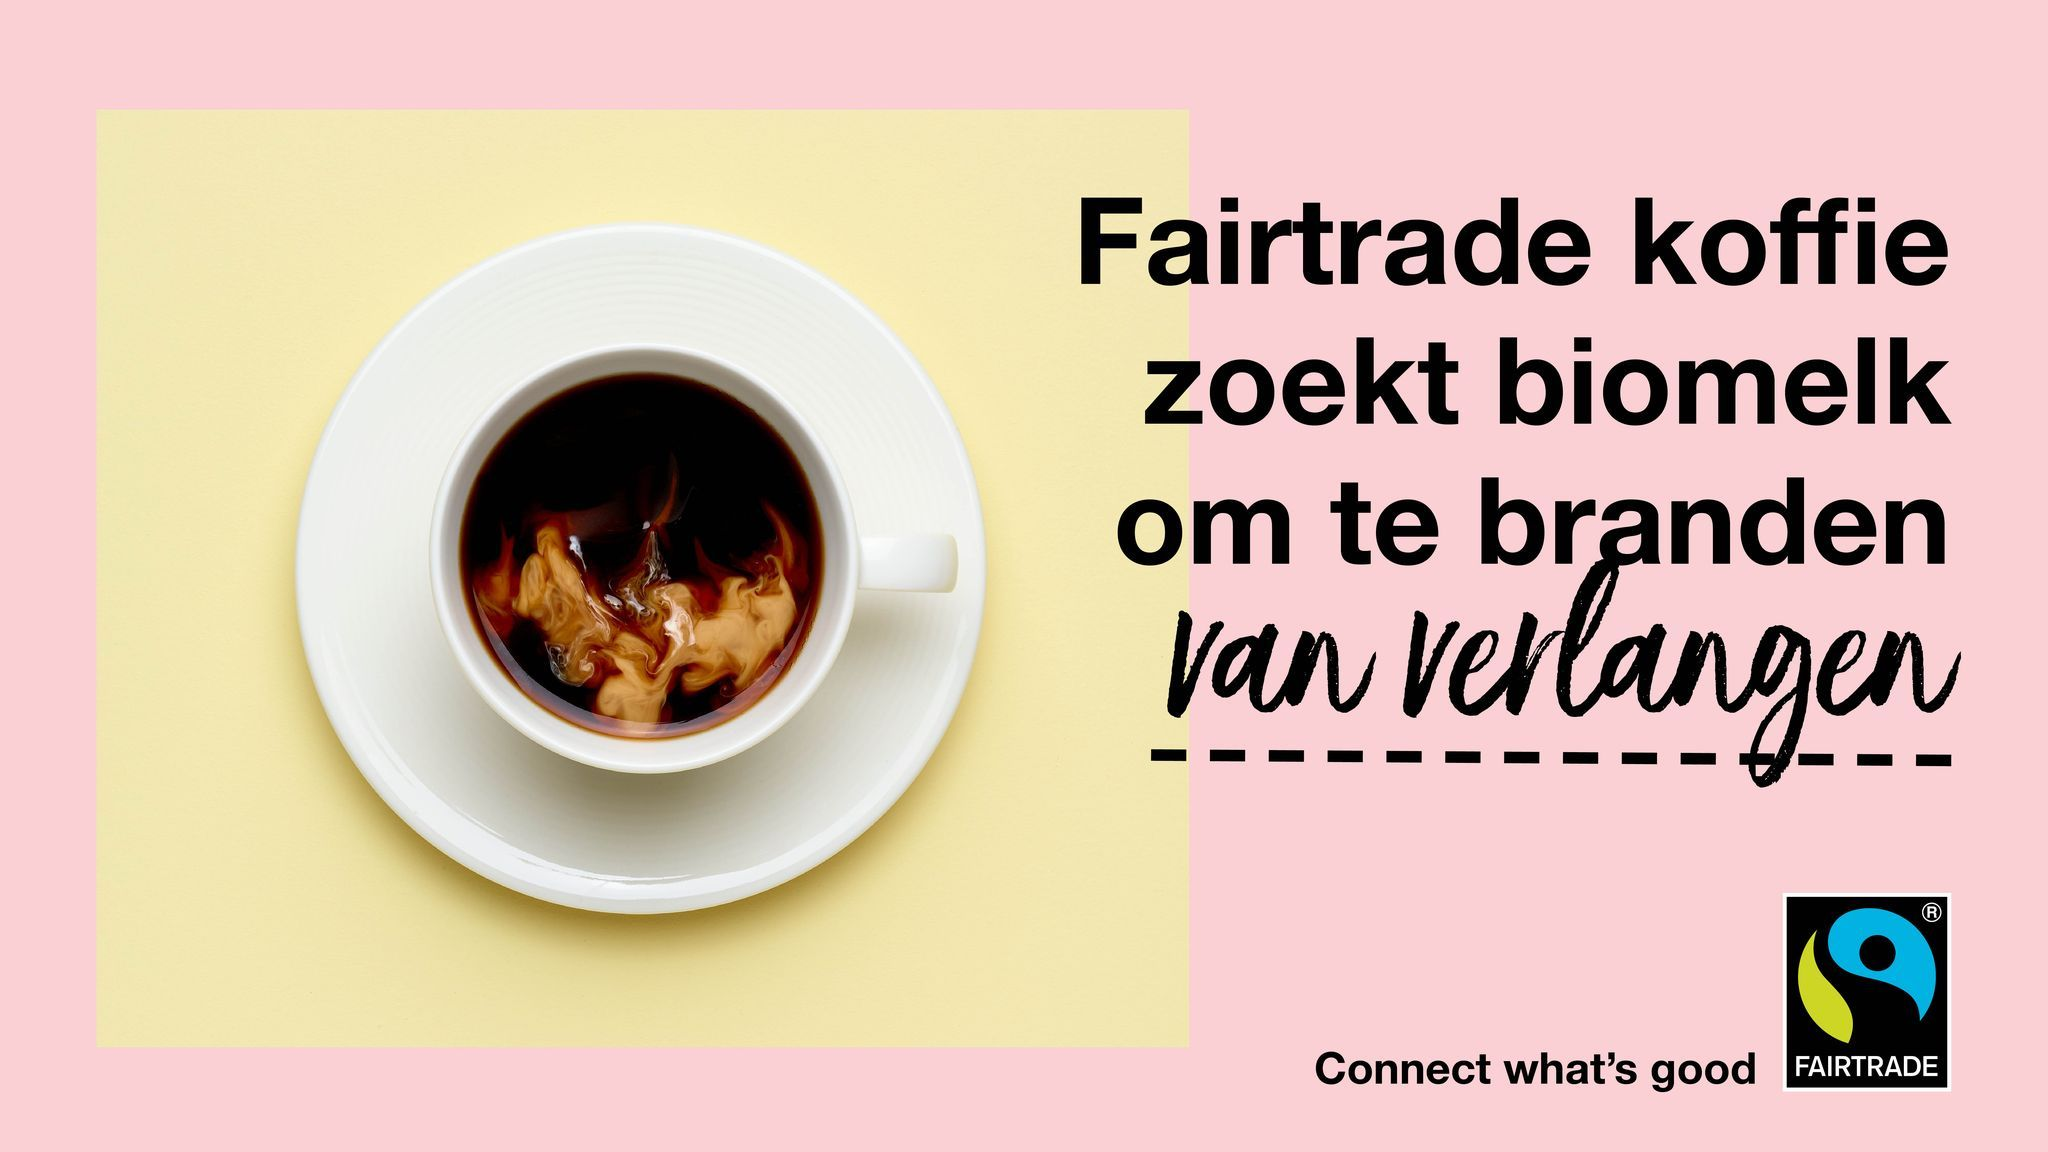 202009 Fairtrade Koffie Biomelk